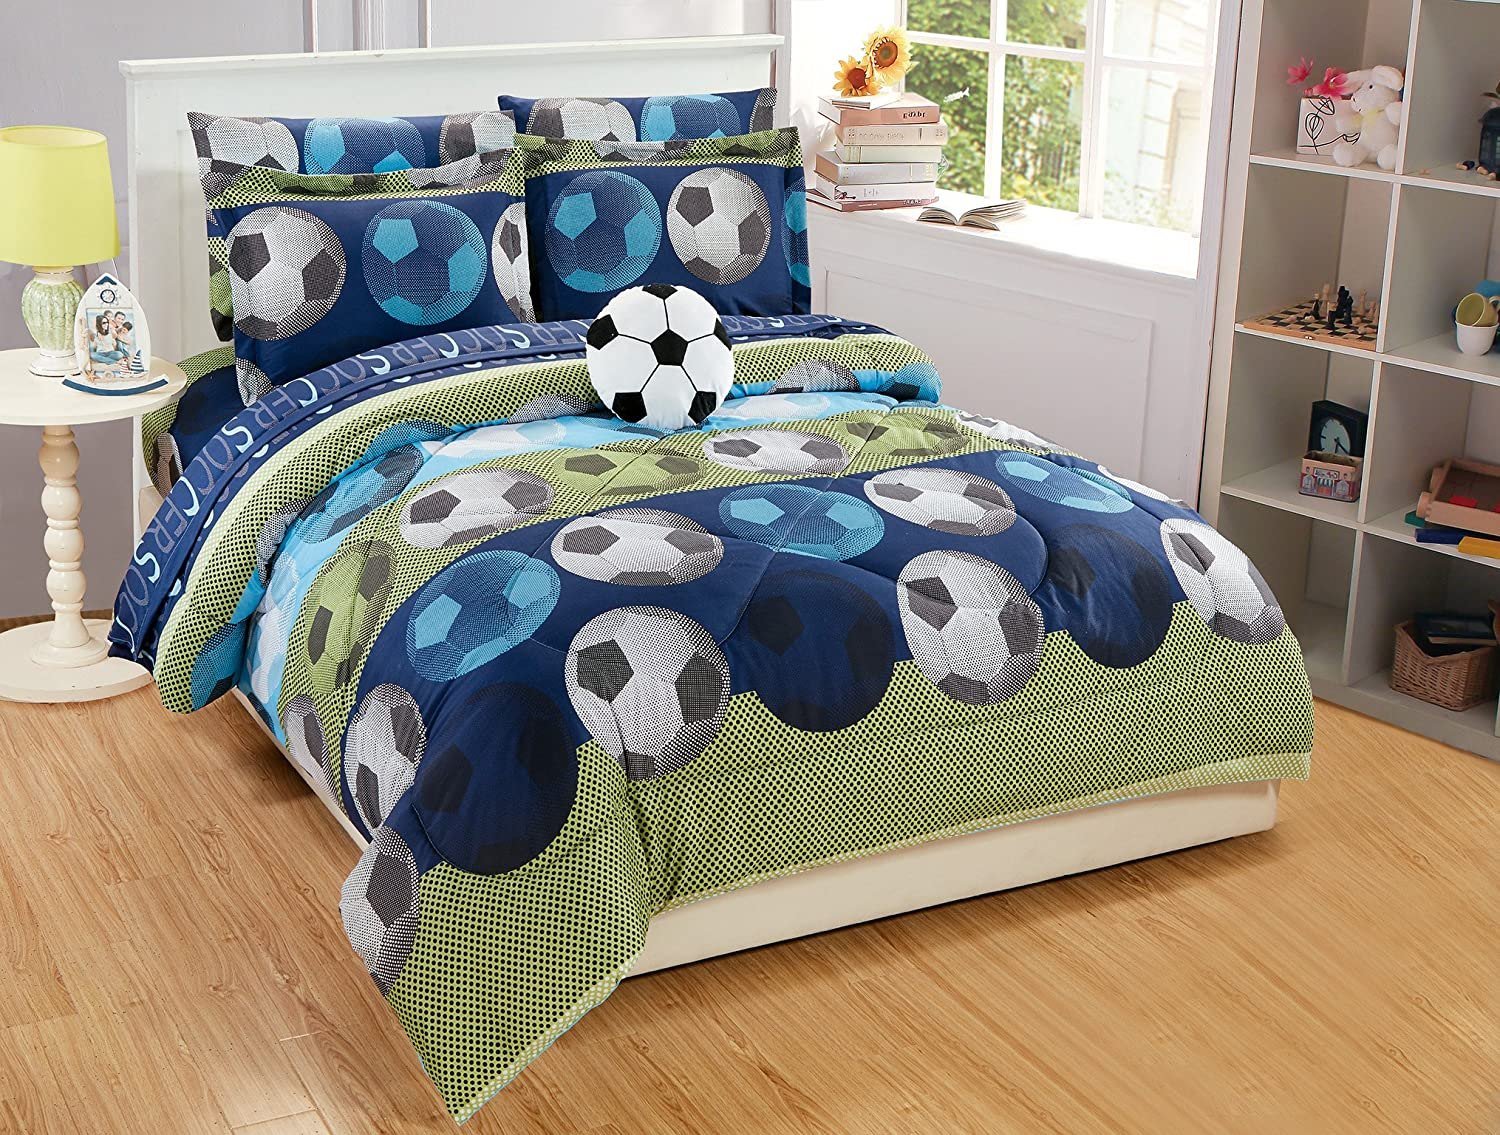 Queen Size 8pc Comforter Set for Boys/Teens Soccer Green Blue Black White New